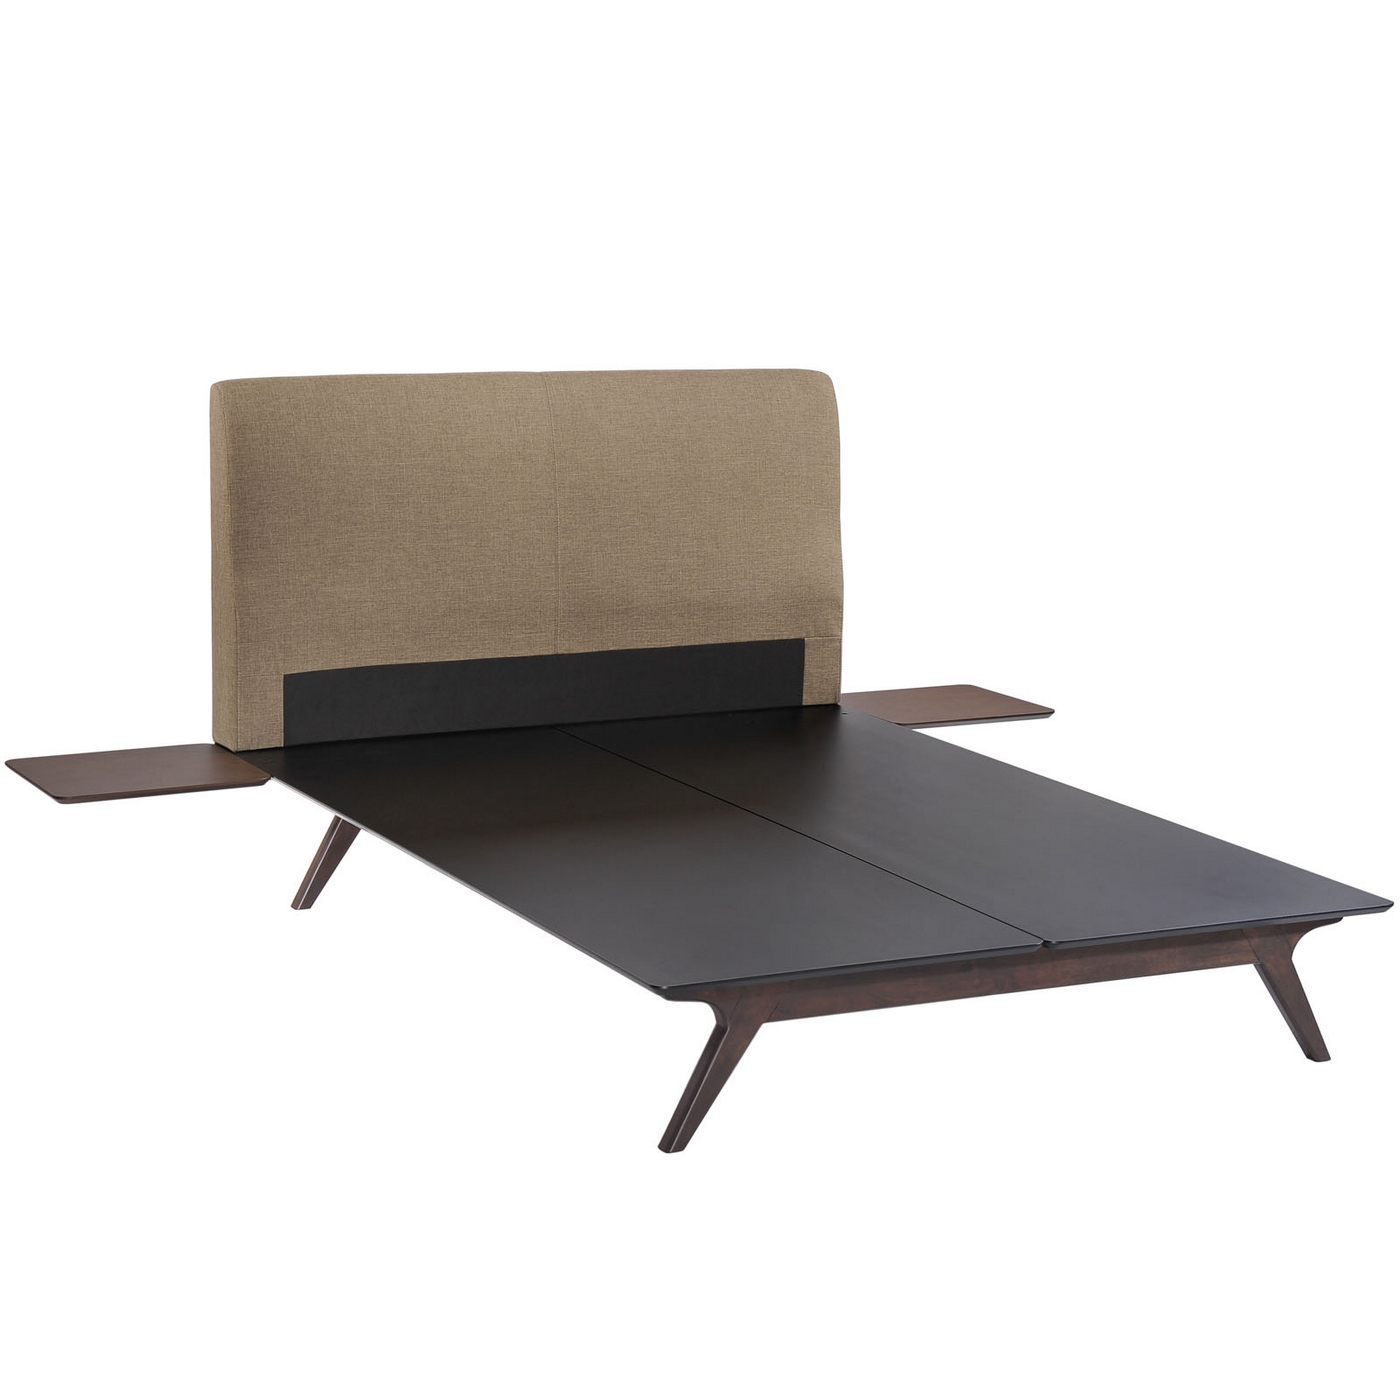 tracy mid century upholstered king platform bed with nightstands cappuccino latte. Black Bedroom Furniture Sets. Home Design Ideas